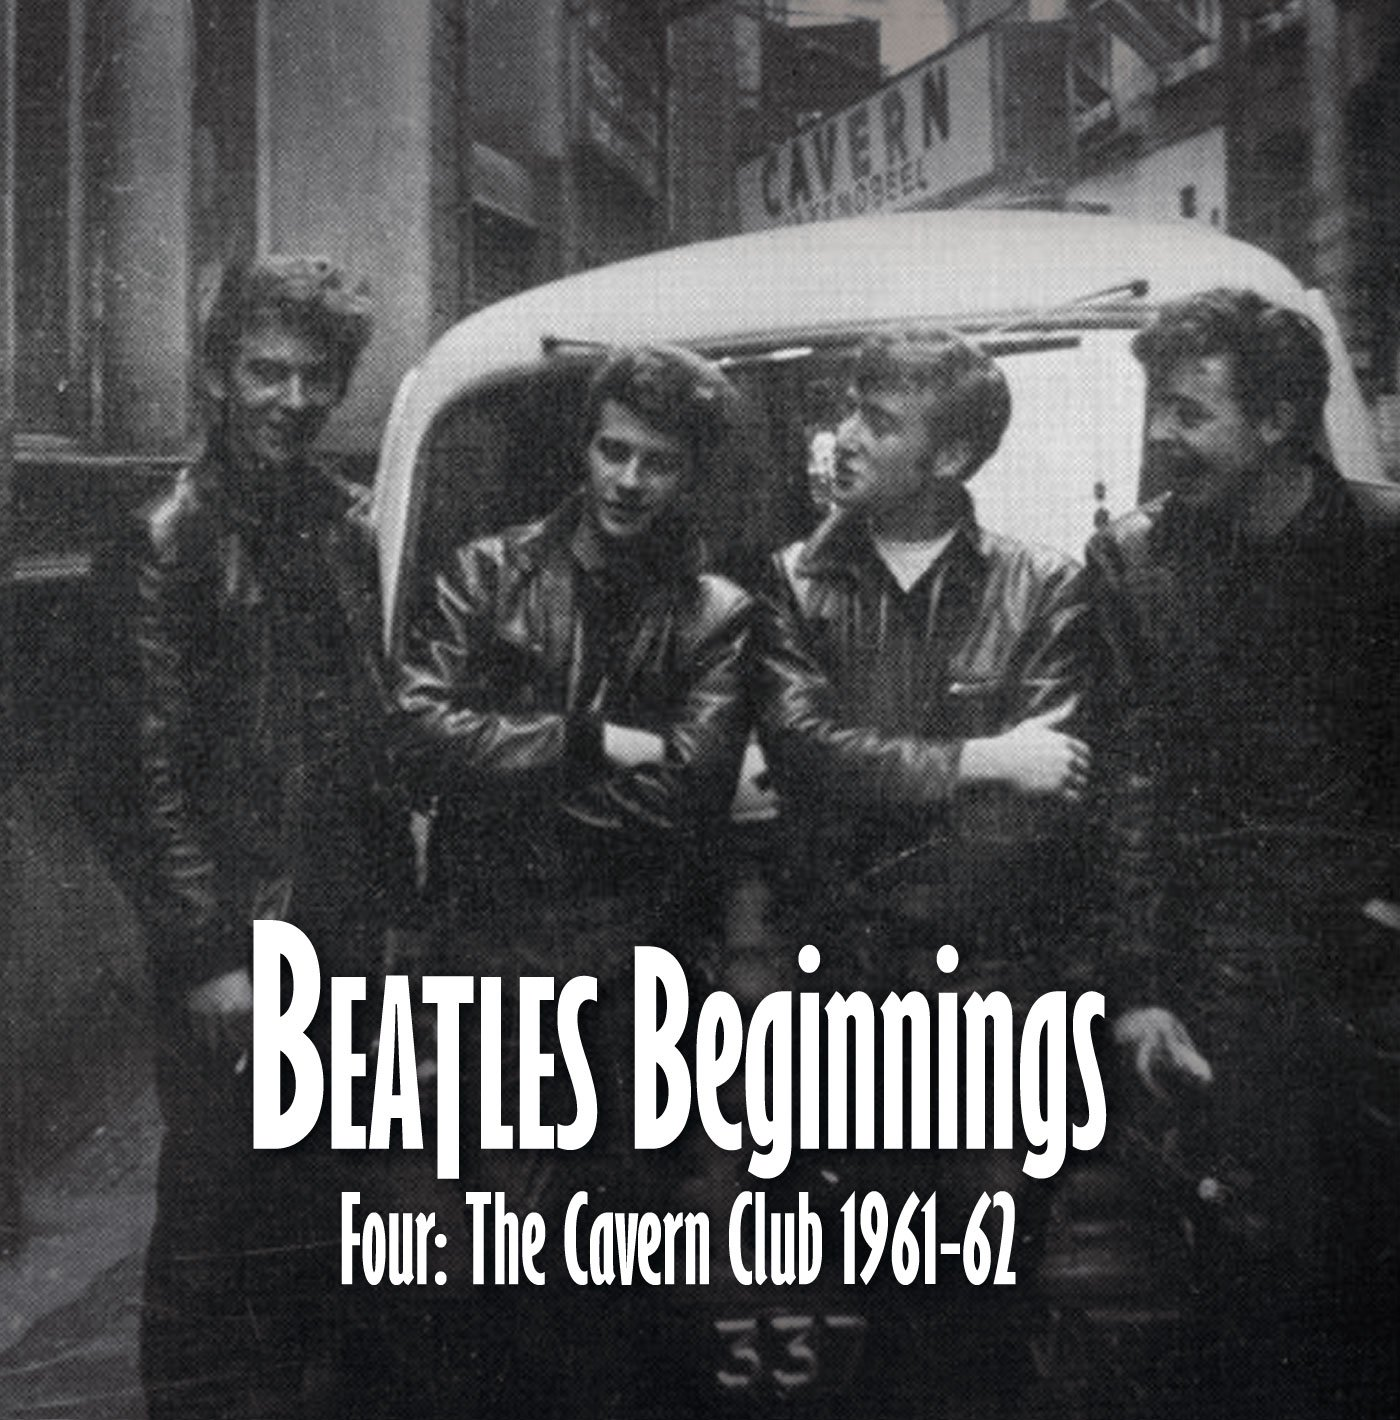 Beatles Beginnings Volume Four: The Cavern Club 1961-62